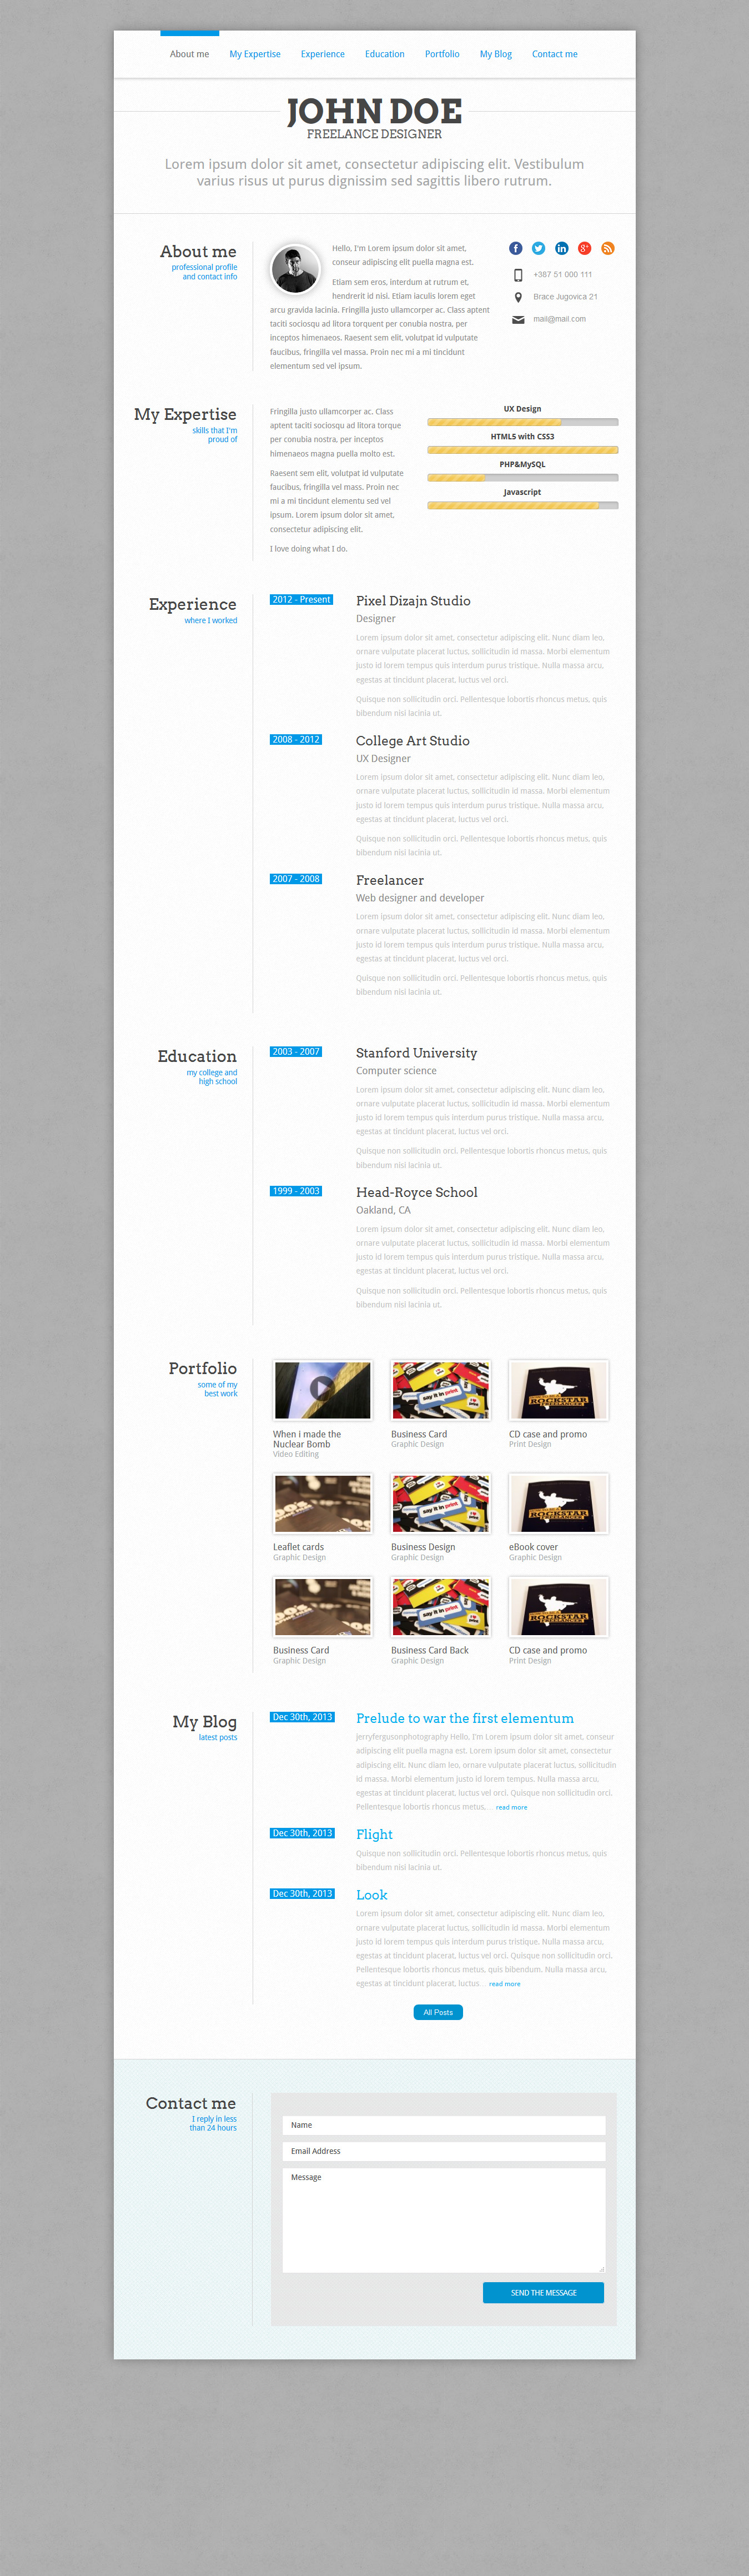 Wordpress Resume Theme Perfectcv  Responsive Cv  Resume Theme #webdesign #website .